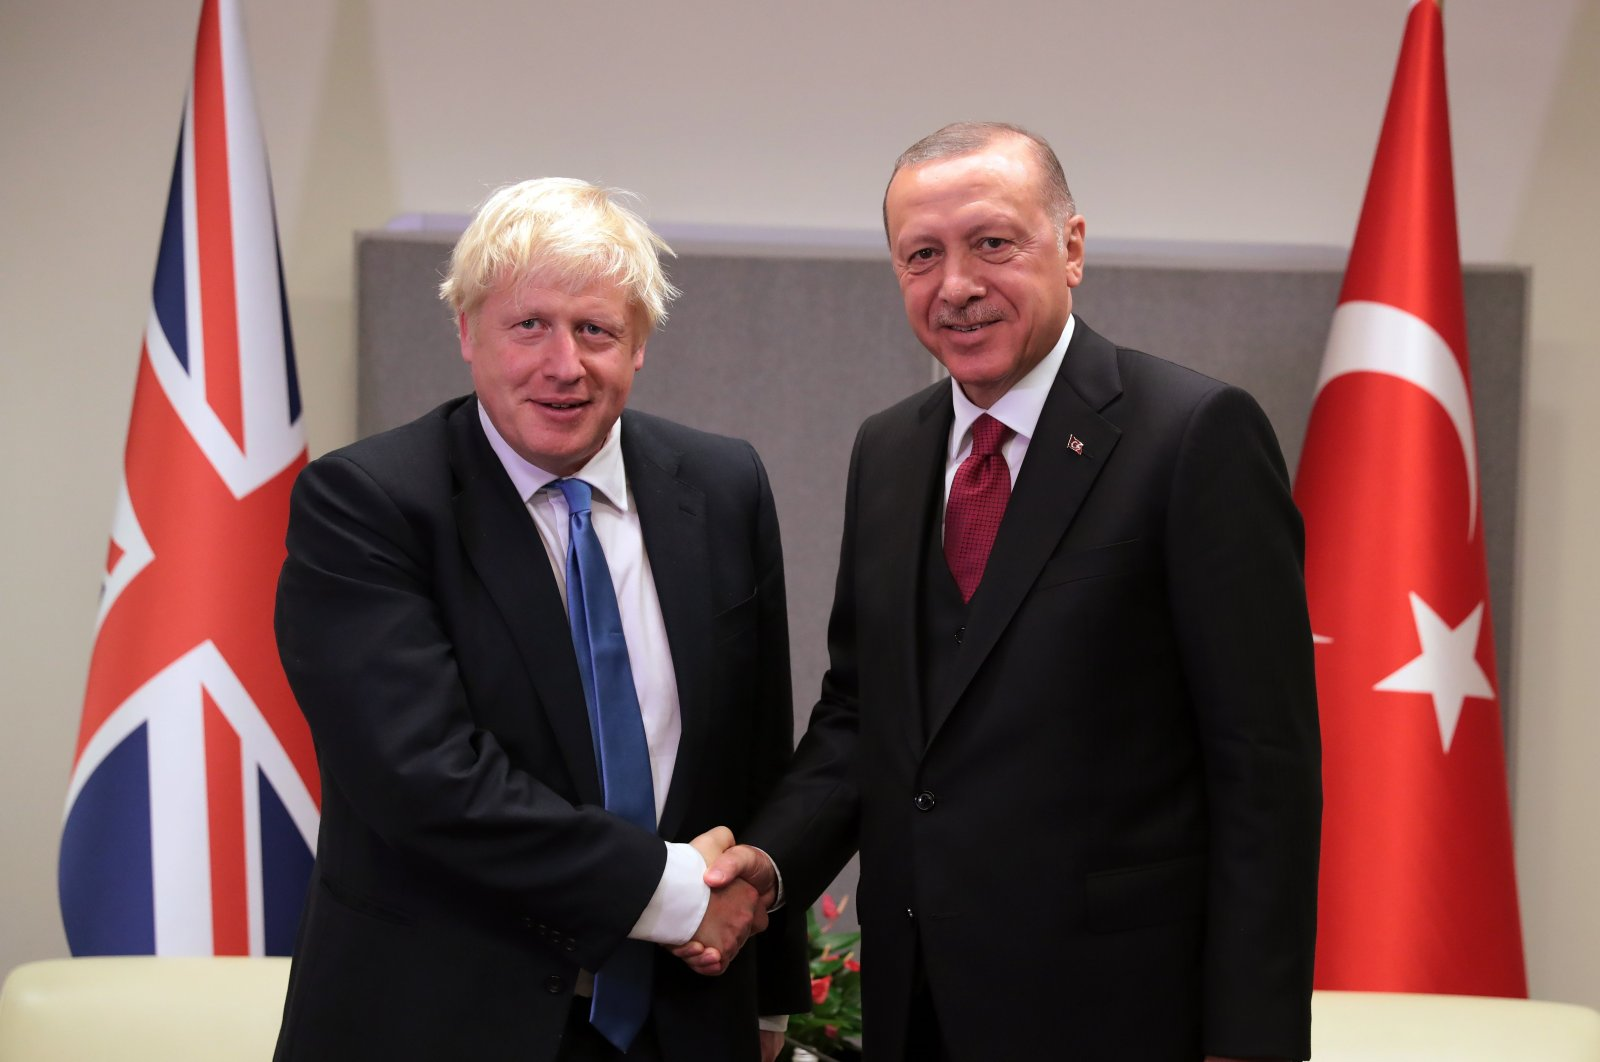 President Recep Tayyip Erdoğan (right) shakes hand with British Prime Minister Boris Johnson (left) at the 74th General Session of United Nations, Sept. 25, 2019. (IHA File Photo)